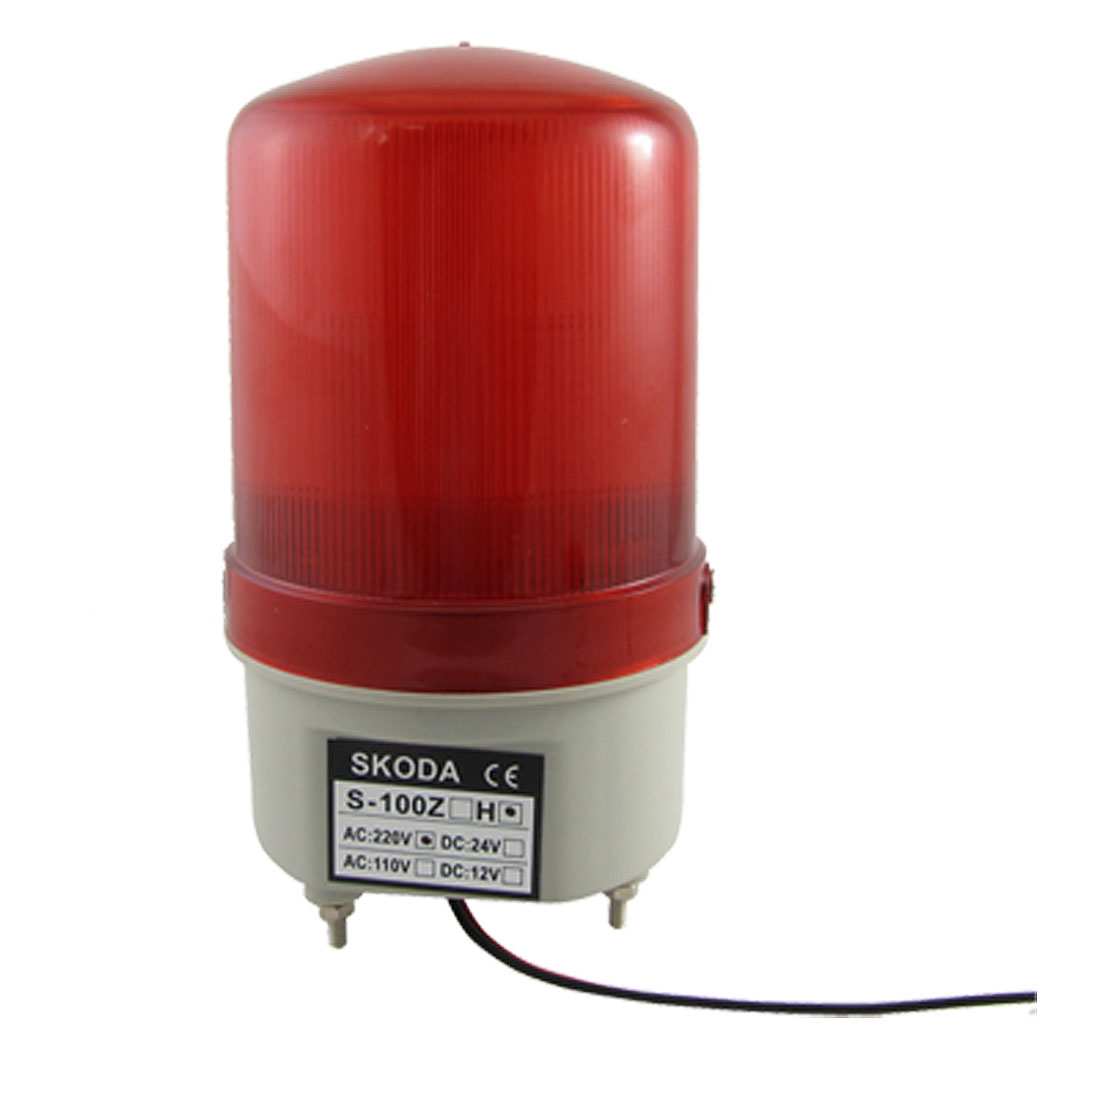 Red LED Industrial Signal Tower Buzzer Sound Alarm Flash Light 90dB AC 220V